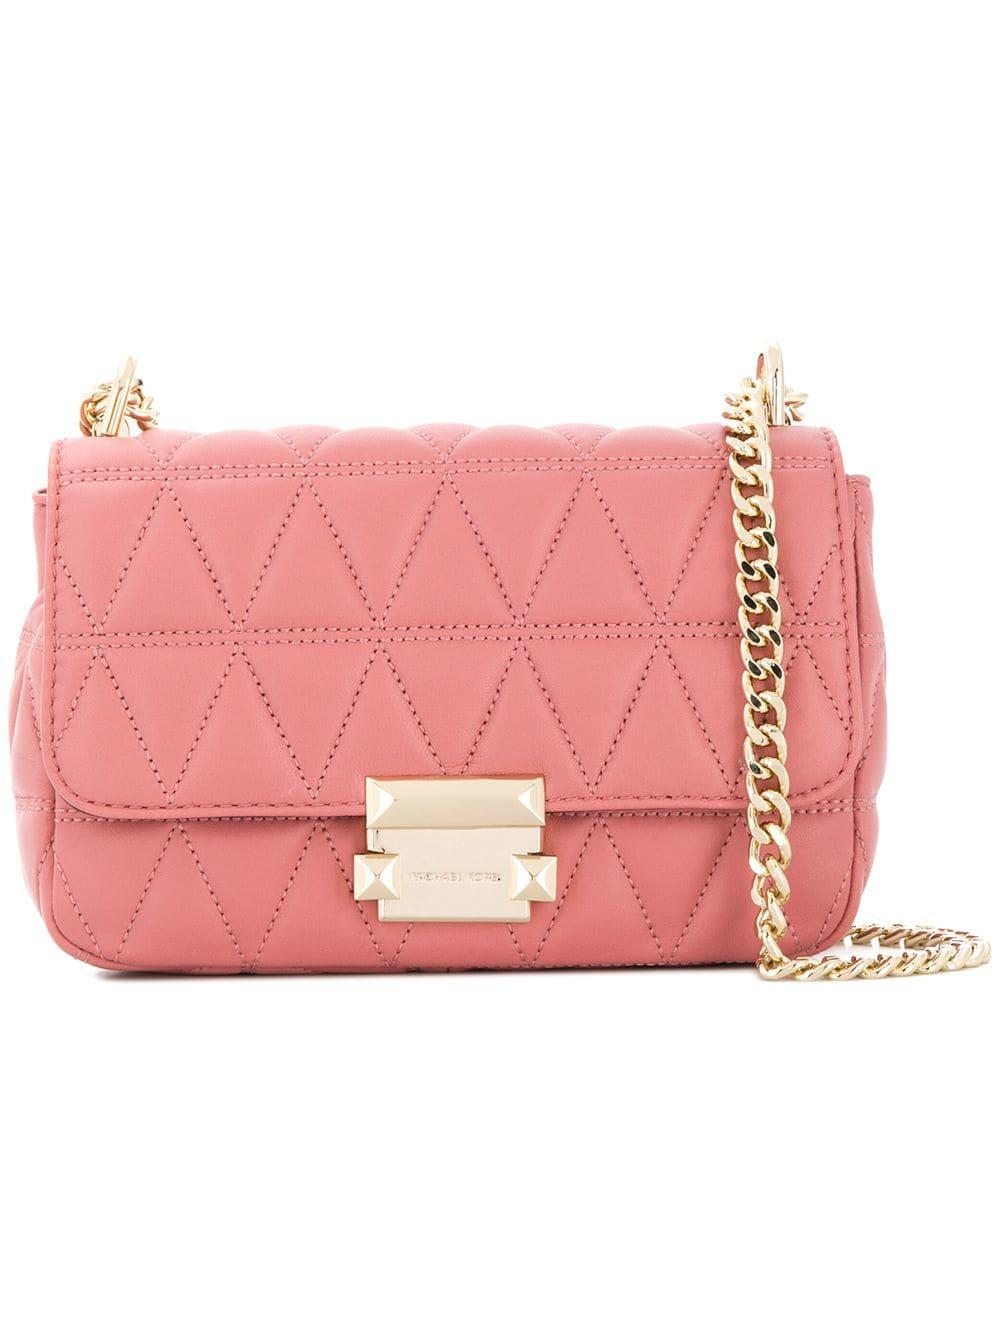 13f86e65fd07b5 Michael Michael Kors Sloan Leather Shoulder Bag in Pink - Lyst